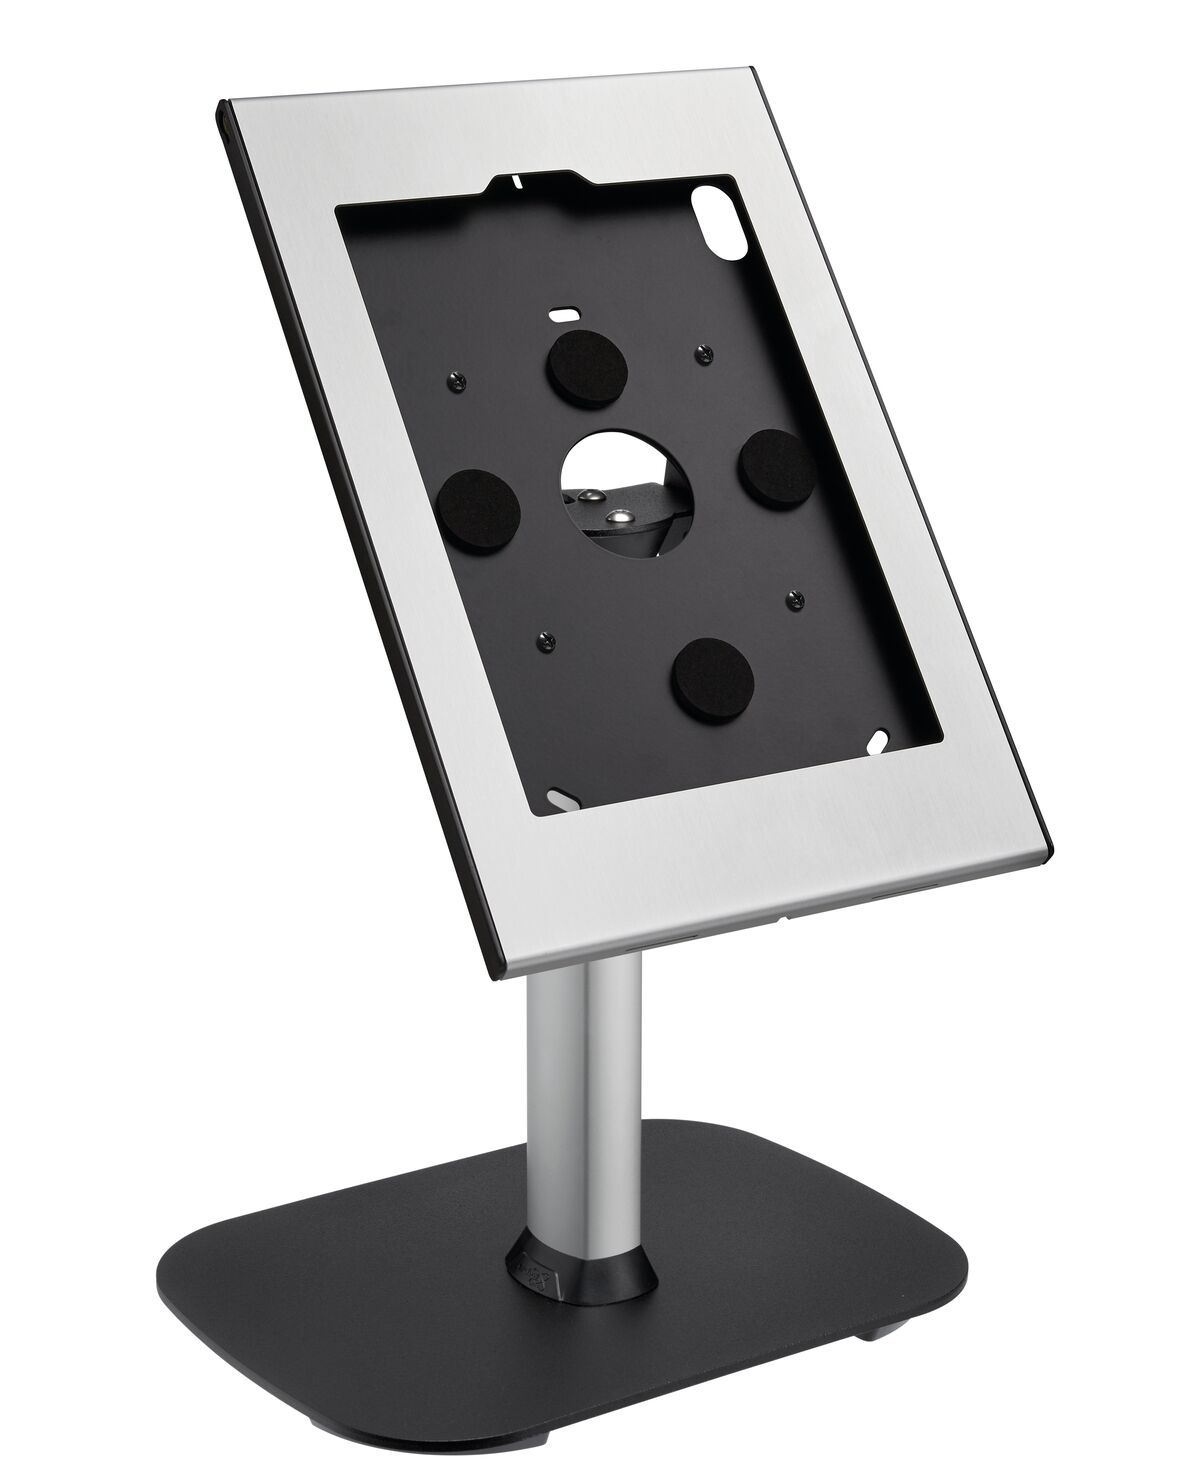 Vogel's PTS 1237 TabLock for Samsung Galaxy Tab S6 (2019) - Application